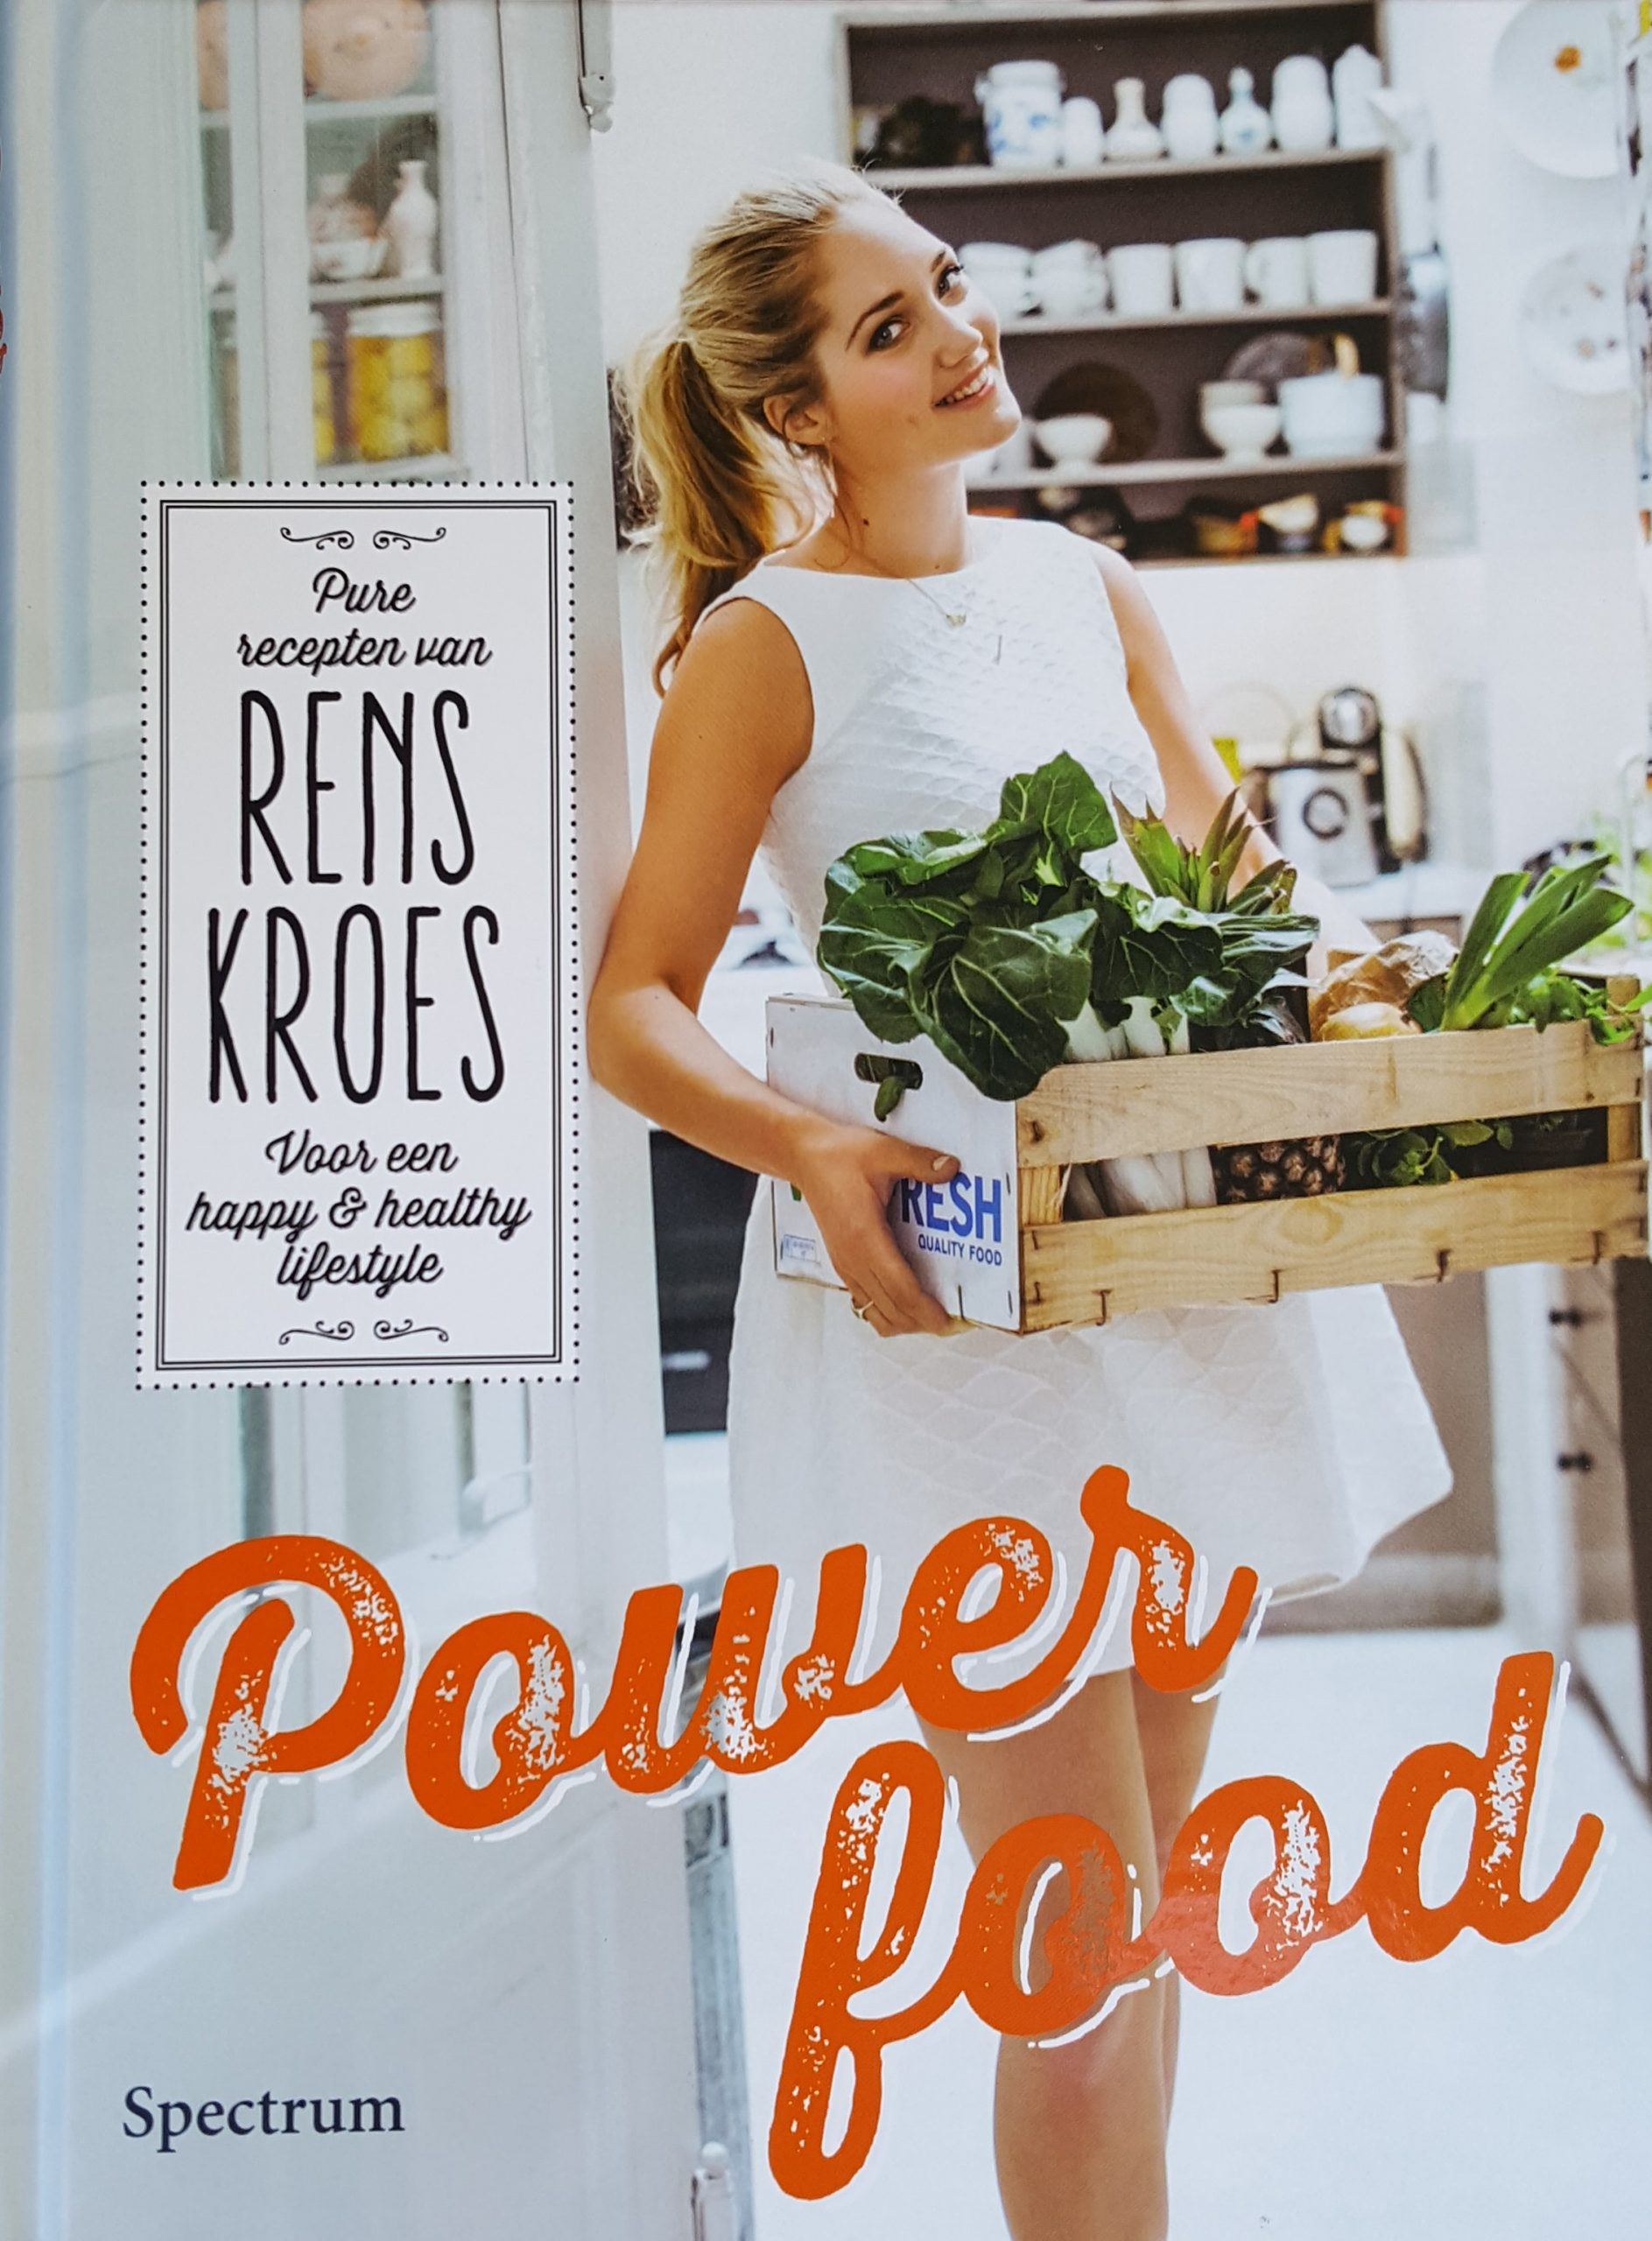 power food rens kroes 19,95